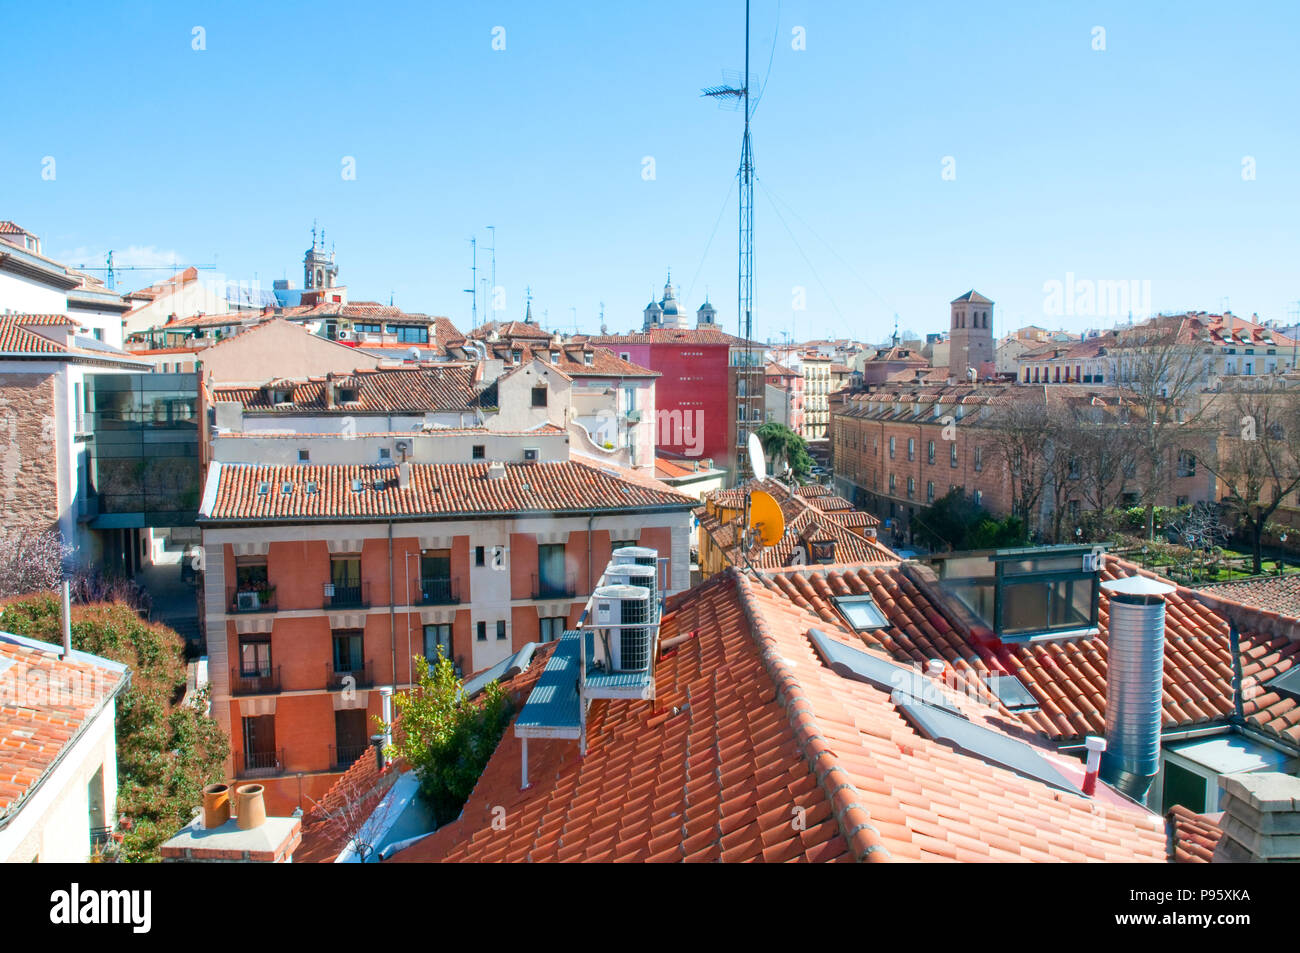 Roofs of Austrias district. Madrid, Spain. - Stock Image